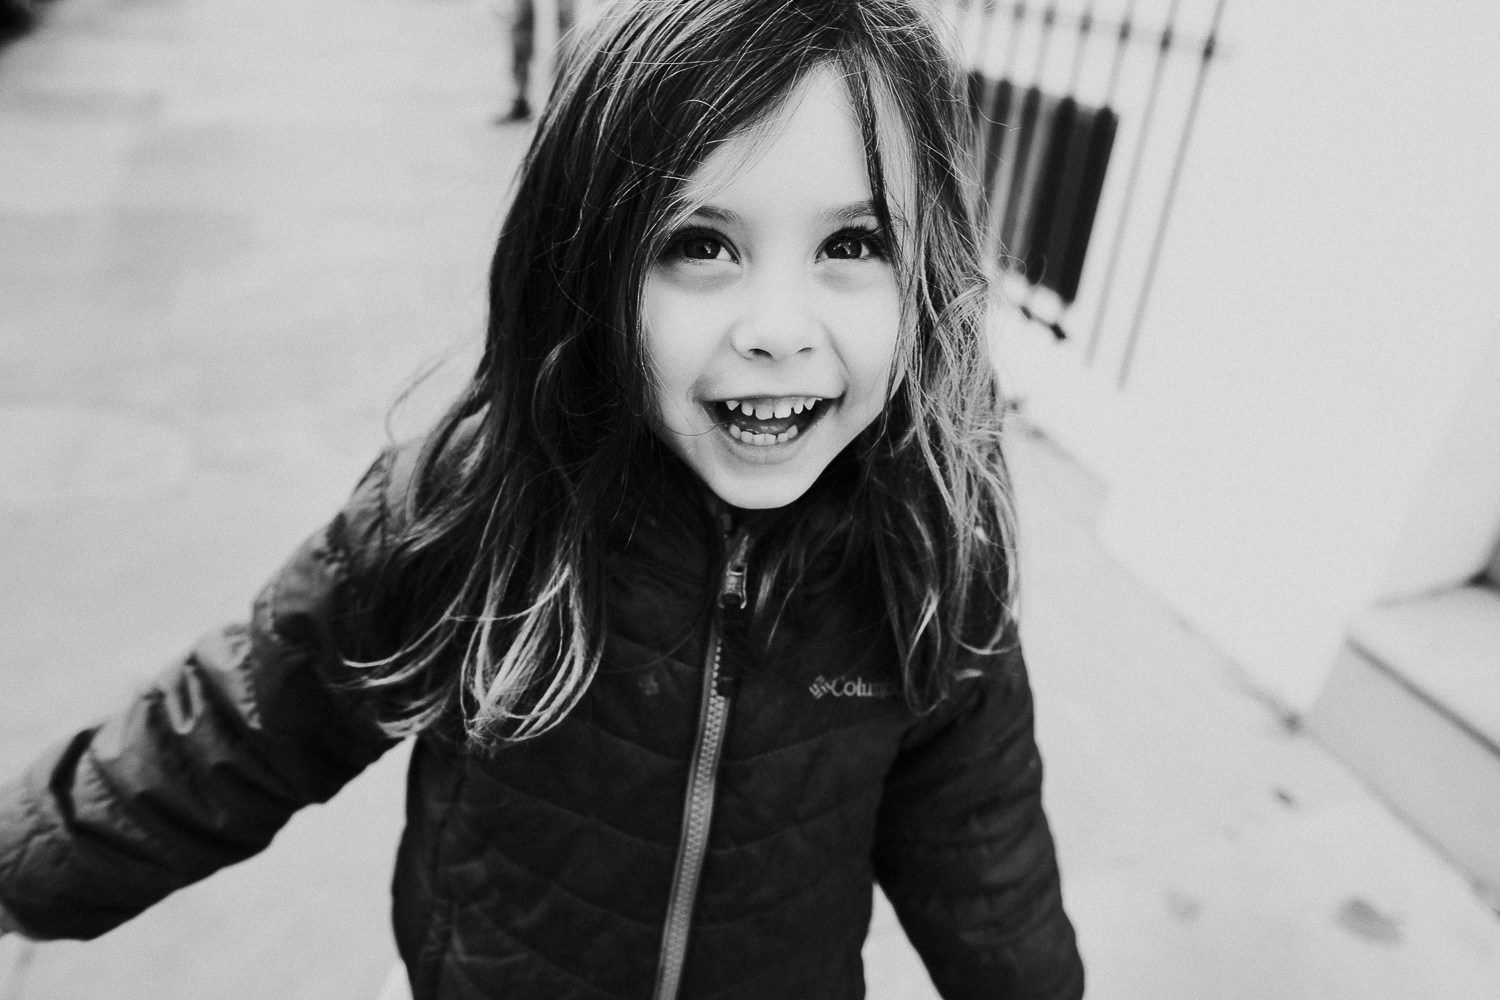 notting hill family photographer close up photo of young girl grinning in the street